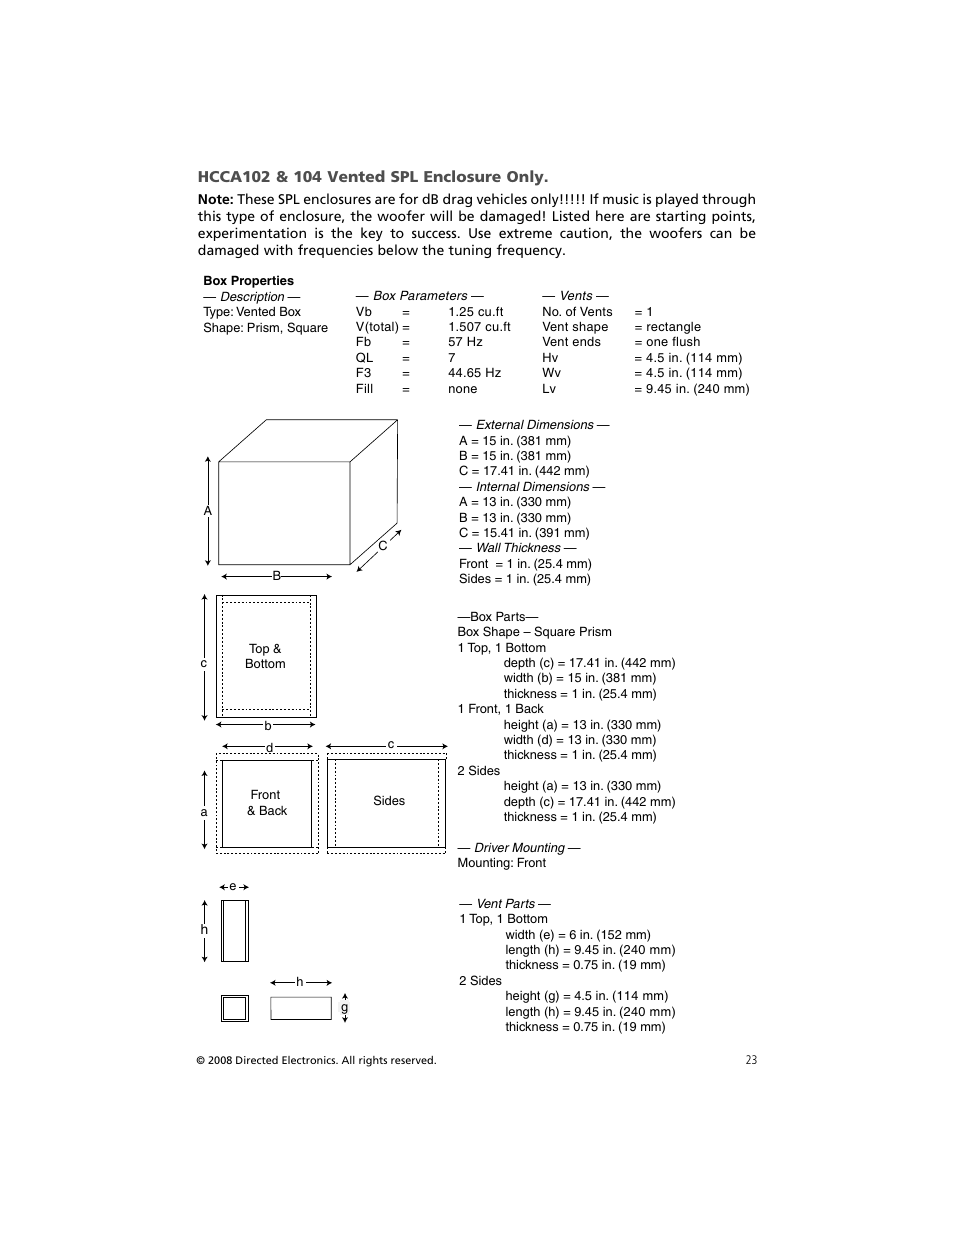 Orion Car Audio HCCA COMPETITION HCCA154 User Manual | Page 24 / 94 | Also  for: HCCA COMPETITION HCCA122, HCCA COMPETITION HCCA104, HCCA COMPETITION  HCCA102 ...